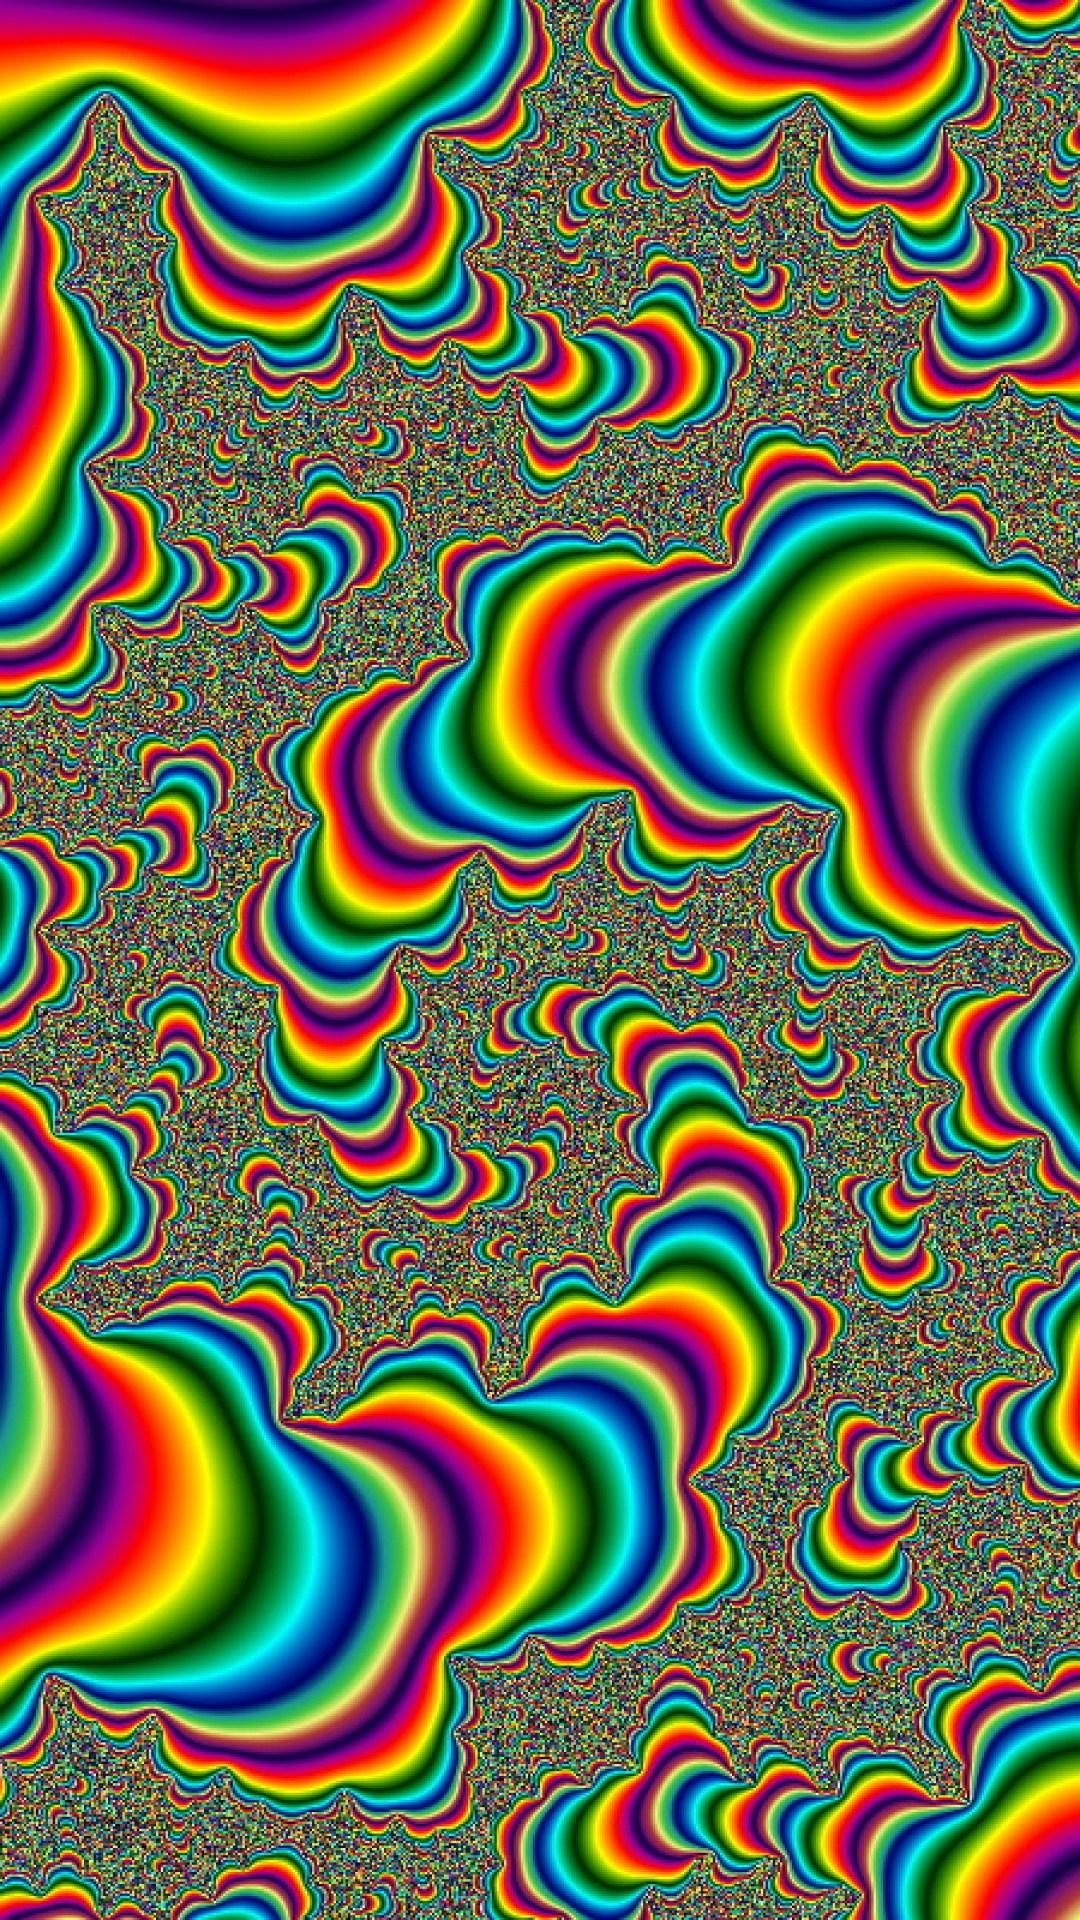 Trippy Iphone 6 Wallpaper 37 Images Trippy Iphone Wallpaper